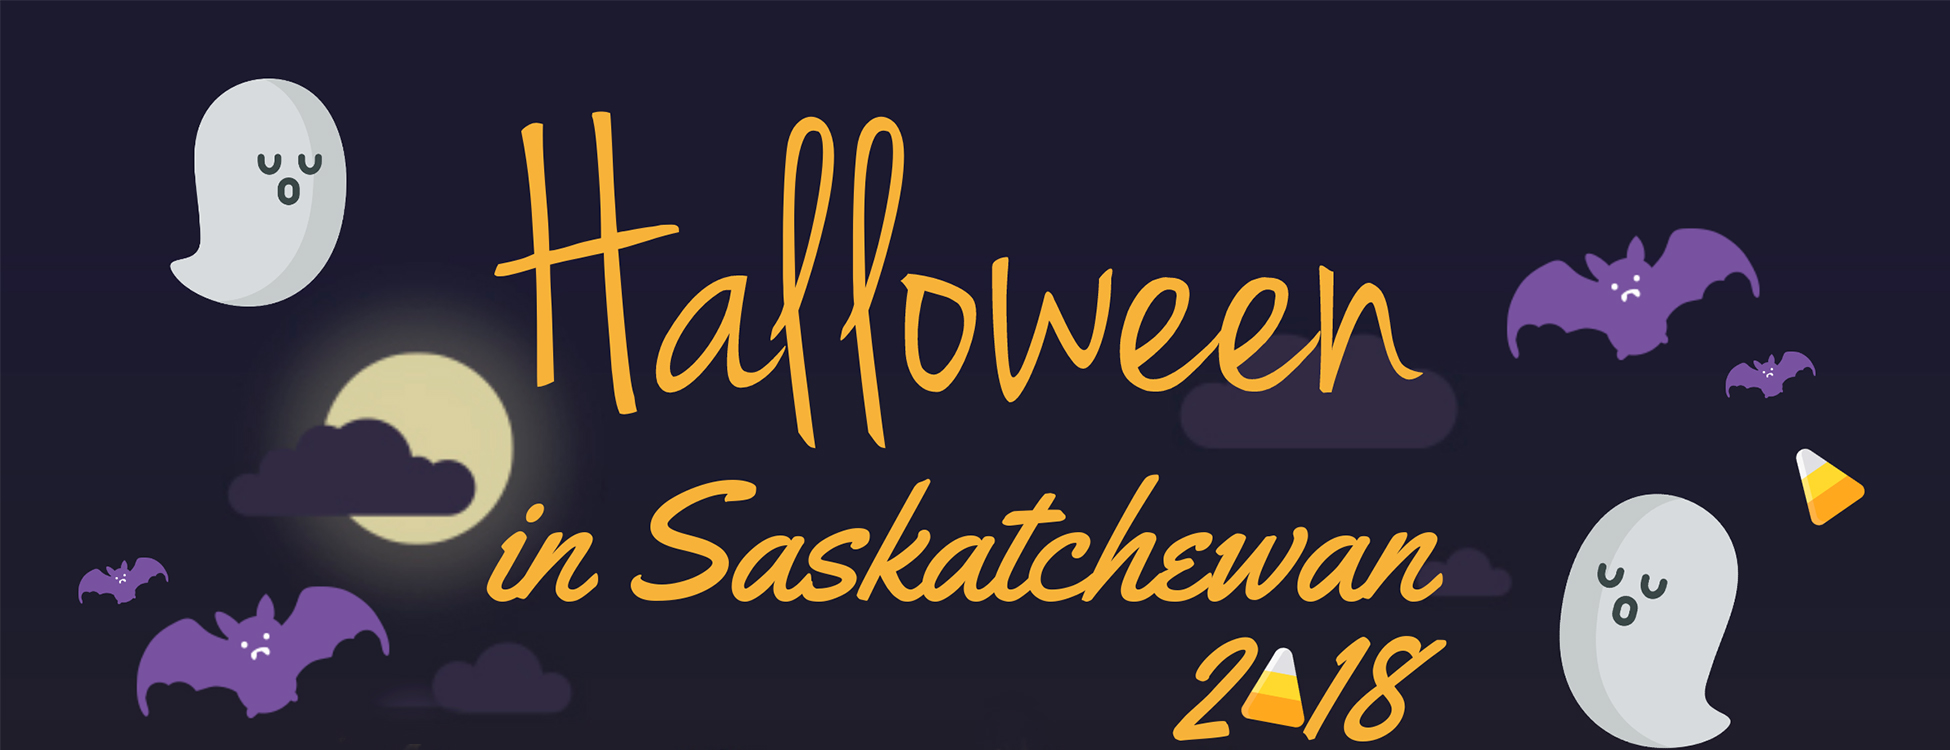 Halloween 2018, Insightrix Research, omnibus research, SaskWatch Research